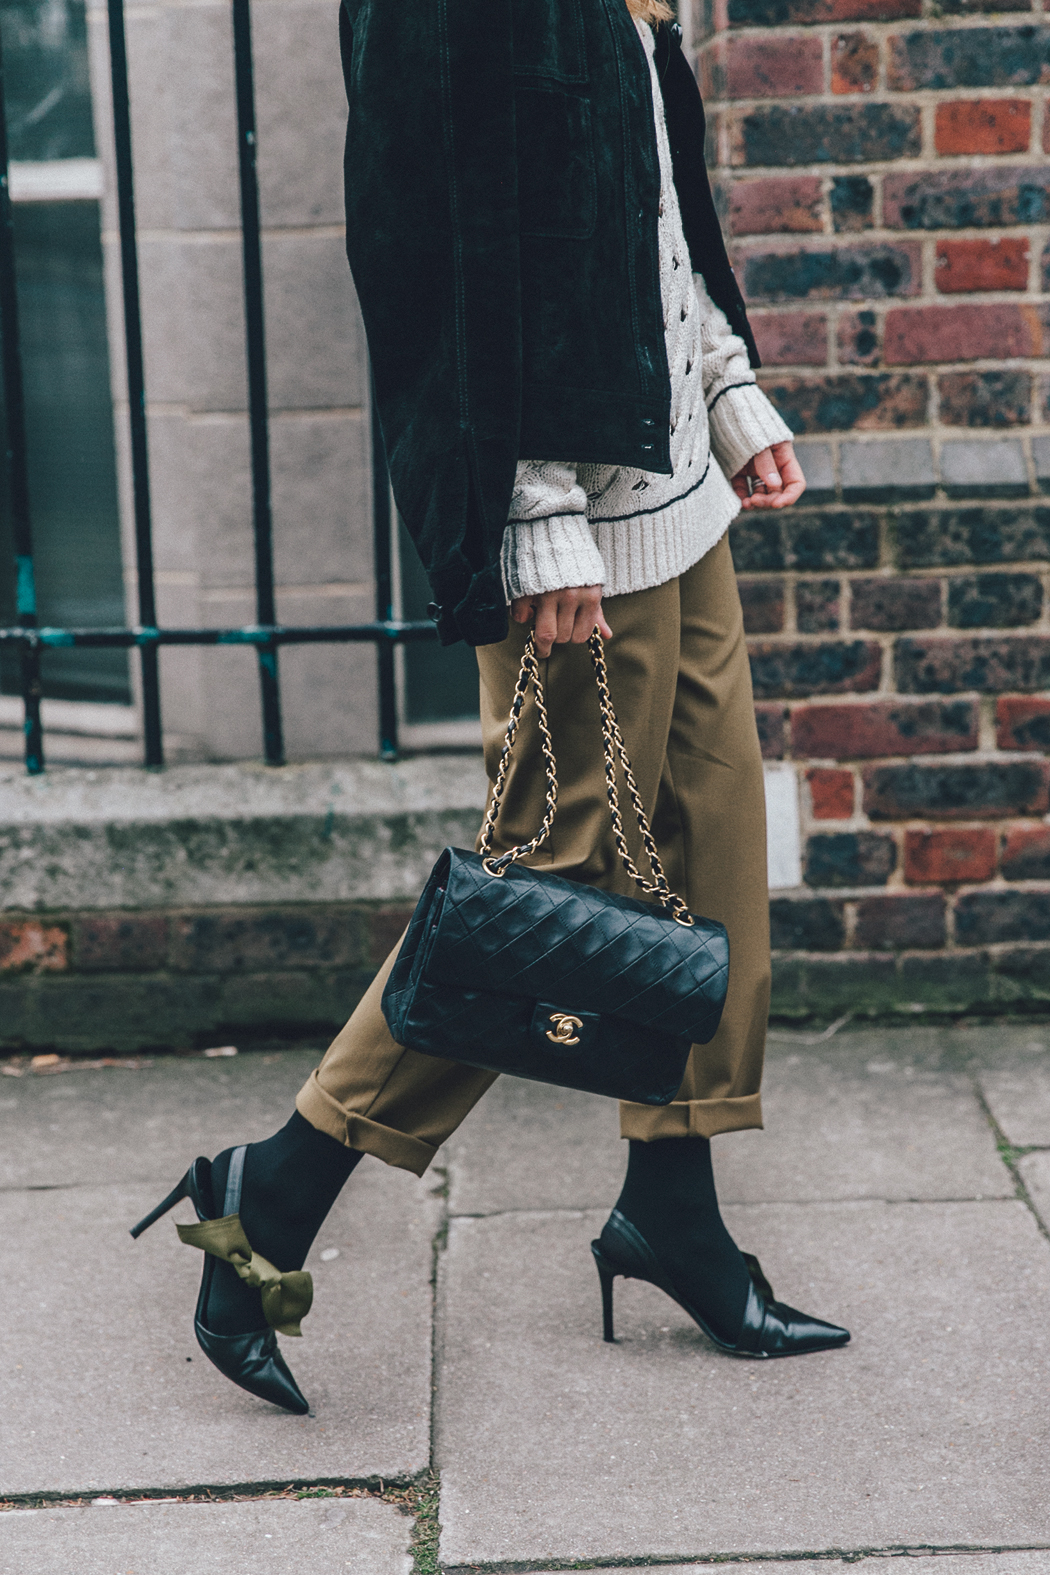 Topshop_Unique-Khaki_Trousers-VNeck_Sweater-Suede_Jacket-Bow_Shoes-Outfit-LFW-London_Fashion_Week_Fall_2016-Street_Style-24